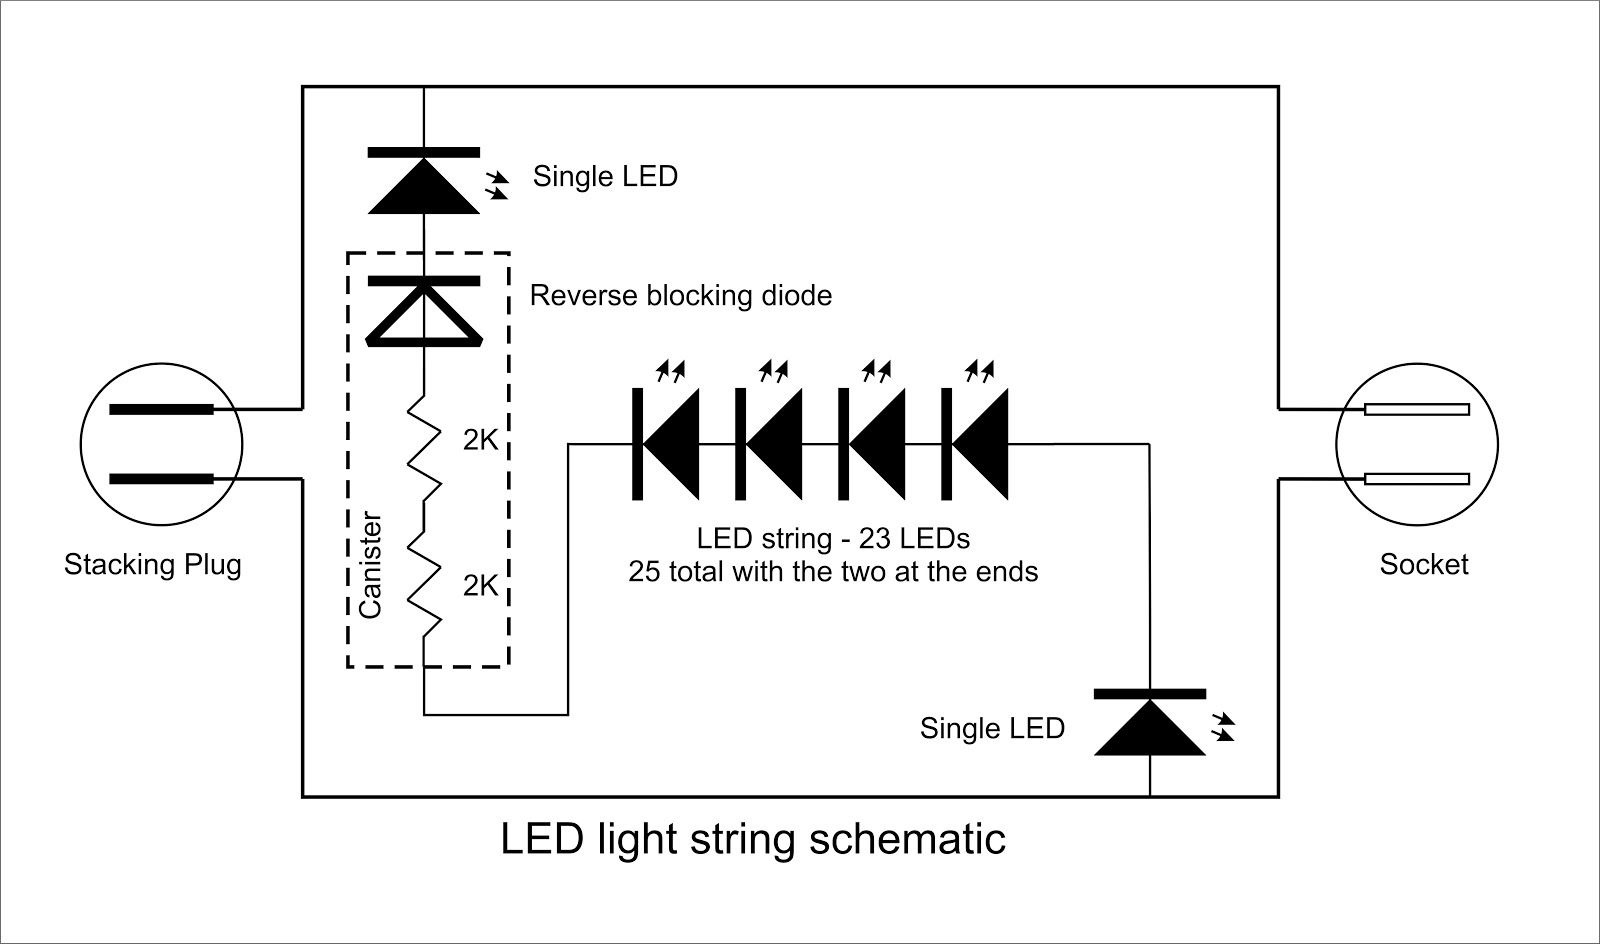 led wiring schematic wiring diagram led circuit board led wiring schematic wiring diagram